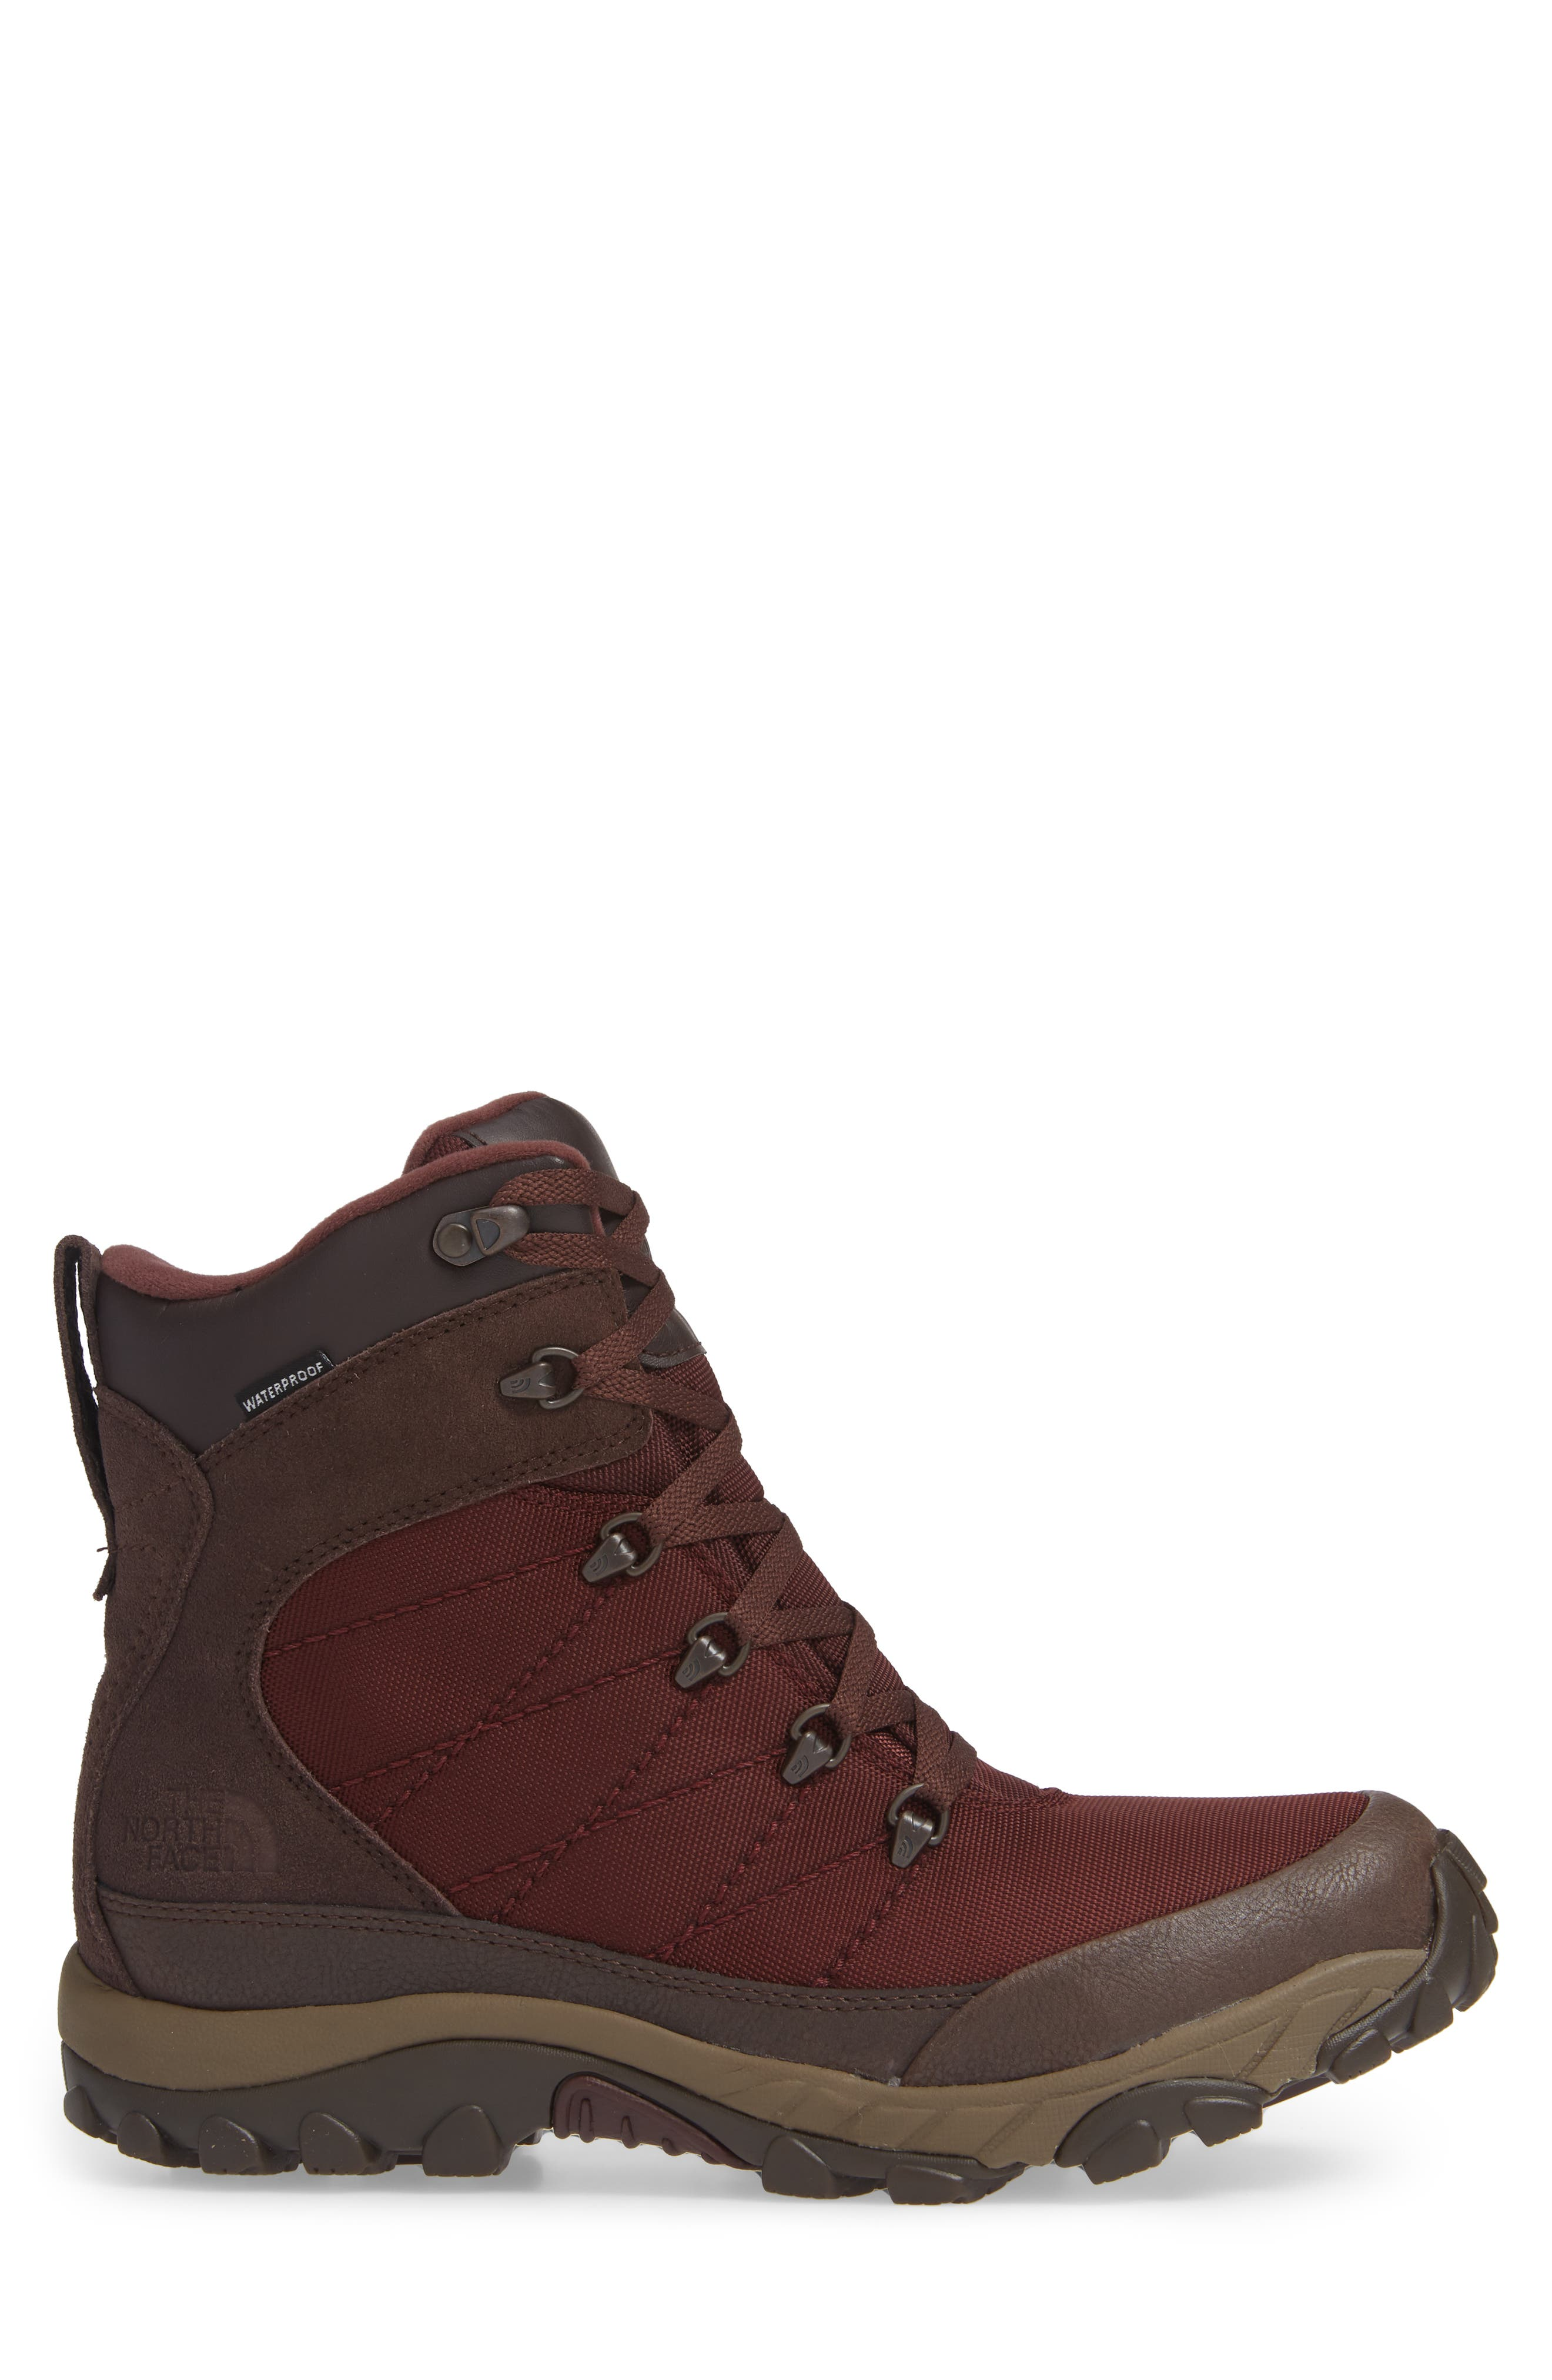 Chilkat Snow Waterproof Boot,                             Alternate thumbnail 3, color,                             BITTER CHOCOLATE BROWN